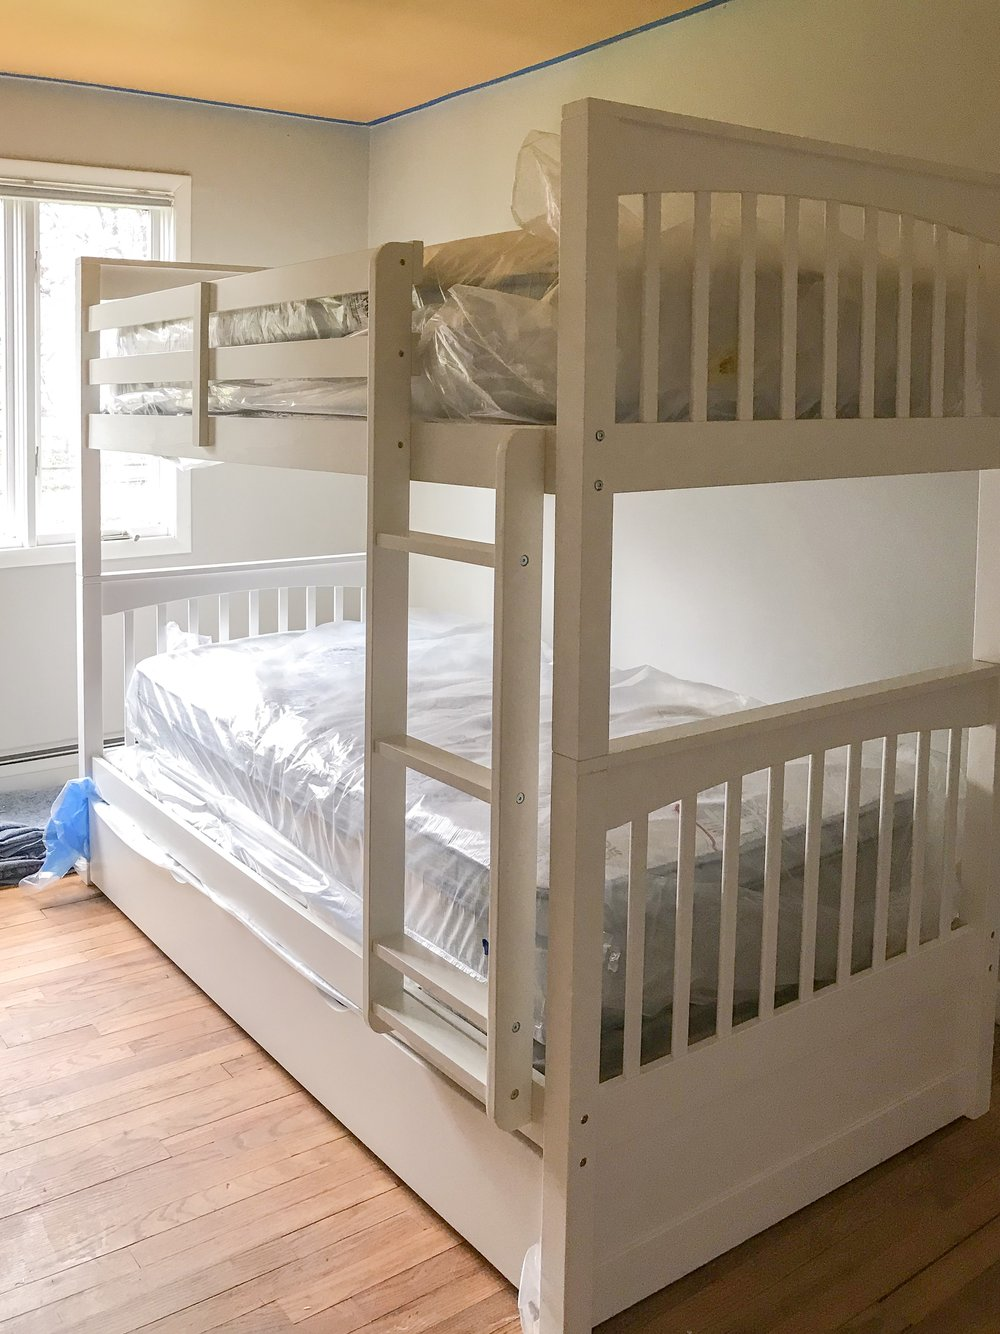 New Bunk Bed delivery for Kids Room Makeover by The Rath Project